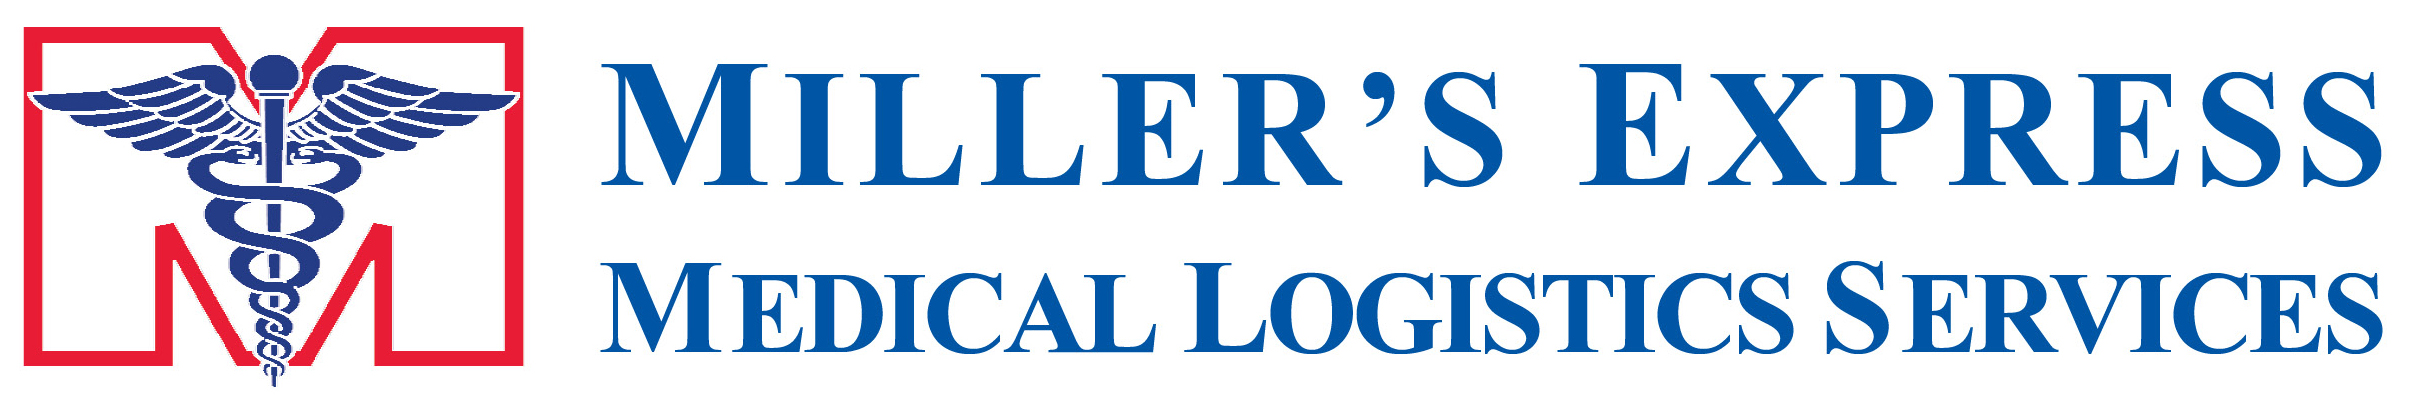 Miller's Express Medical Logistics Services Logo